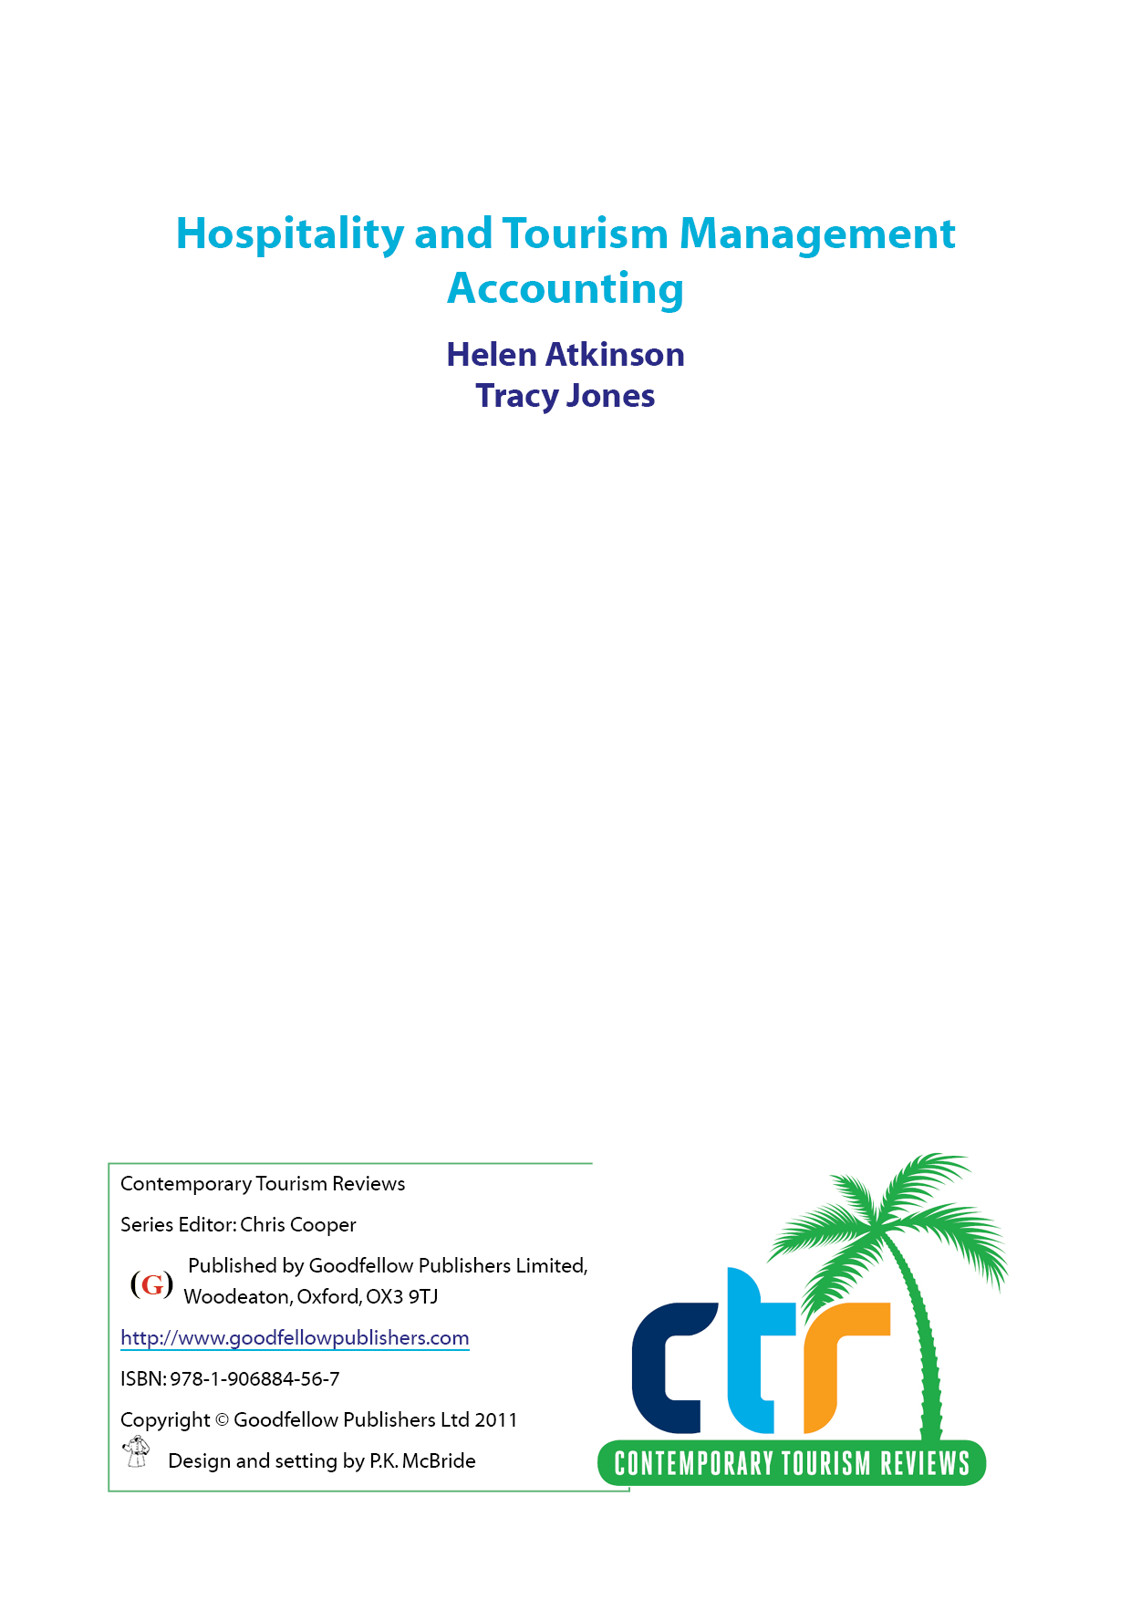 Hospitality and Tourism Management Accounting